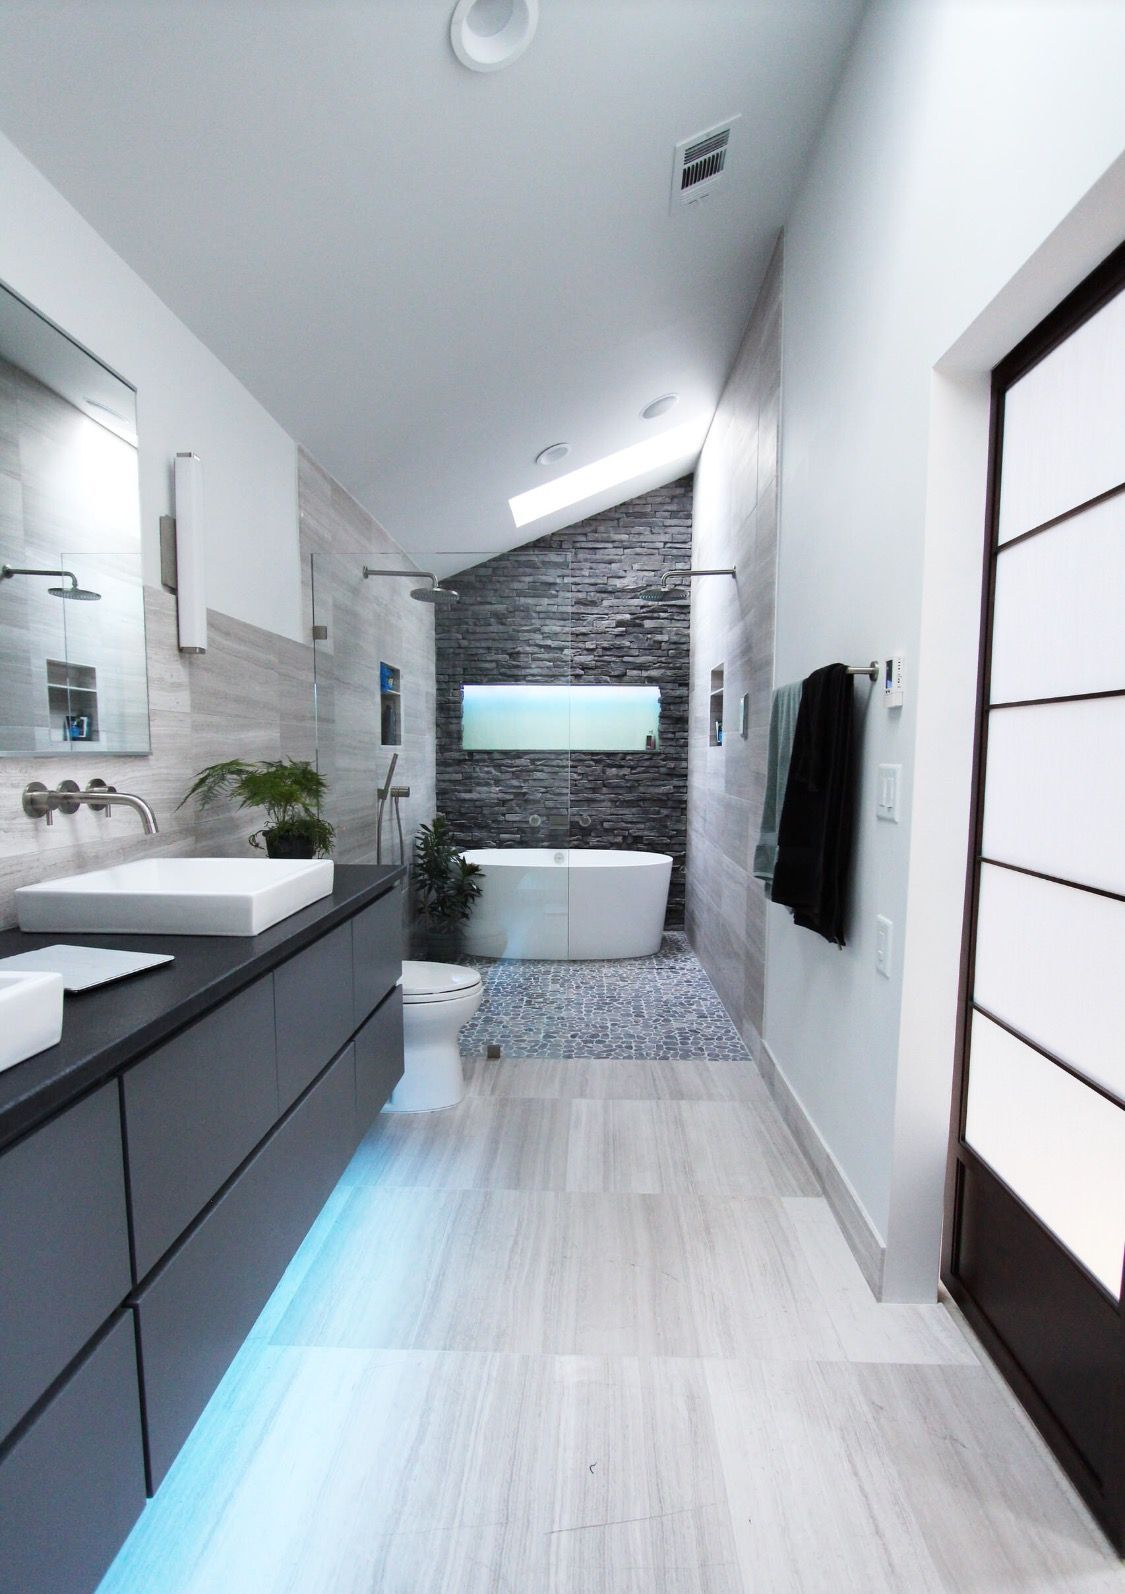 What do you think about this shower enclosure with the freestanding ...